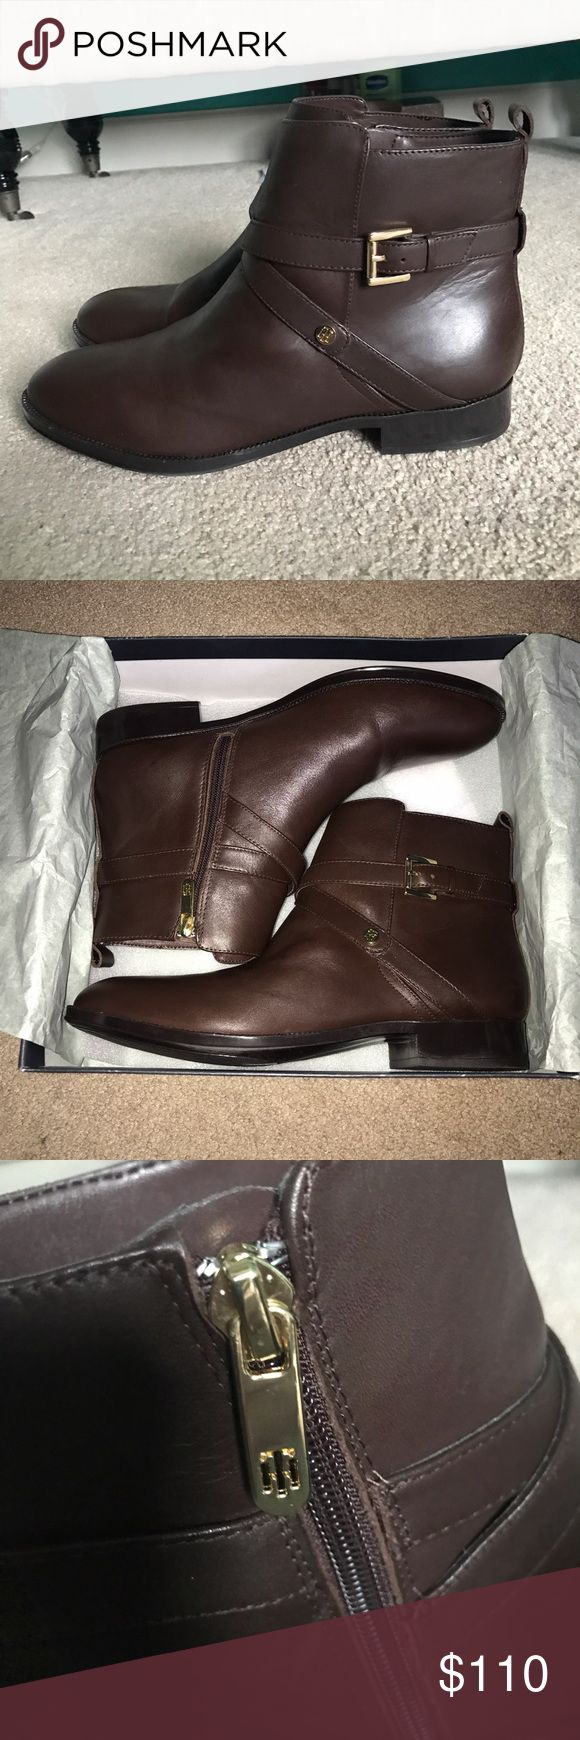 Tommy Hilfiger boots Women's Tommy Hilfiger brown leather boots, brand new, never worn. True to size. Will be shipped without box. Tommy Hilfiger Shoes Ankle Boots & Booties